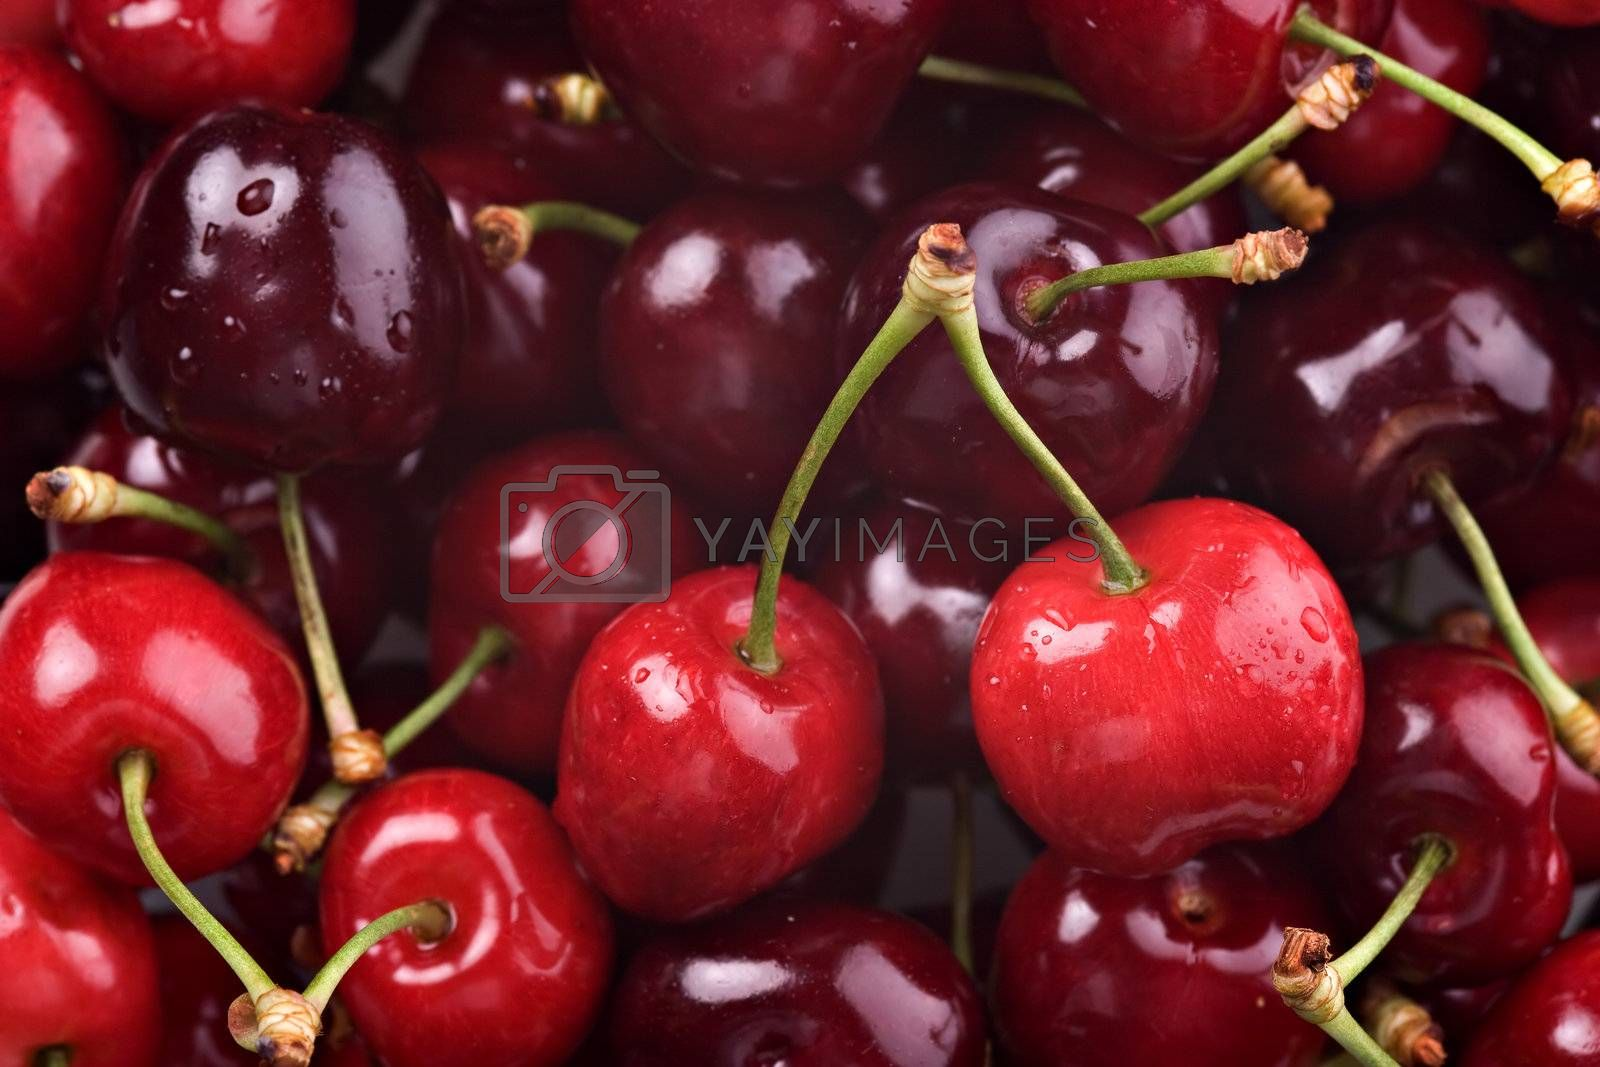 Photo of a bunch of Red cherries.